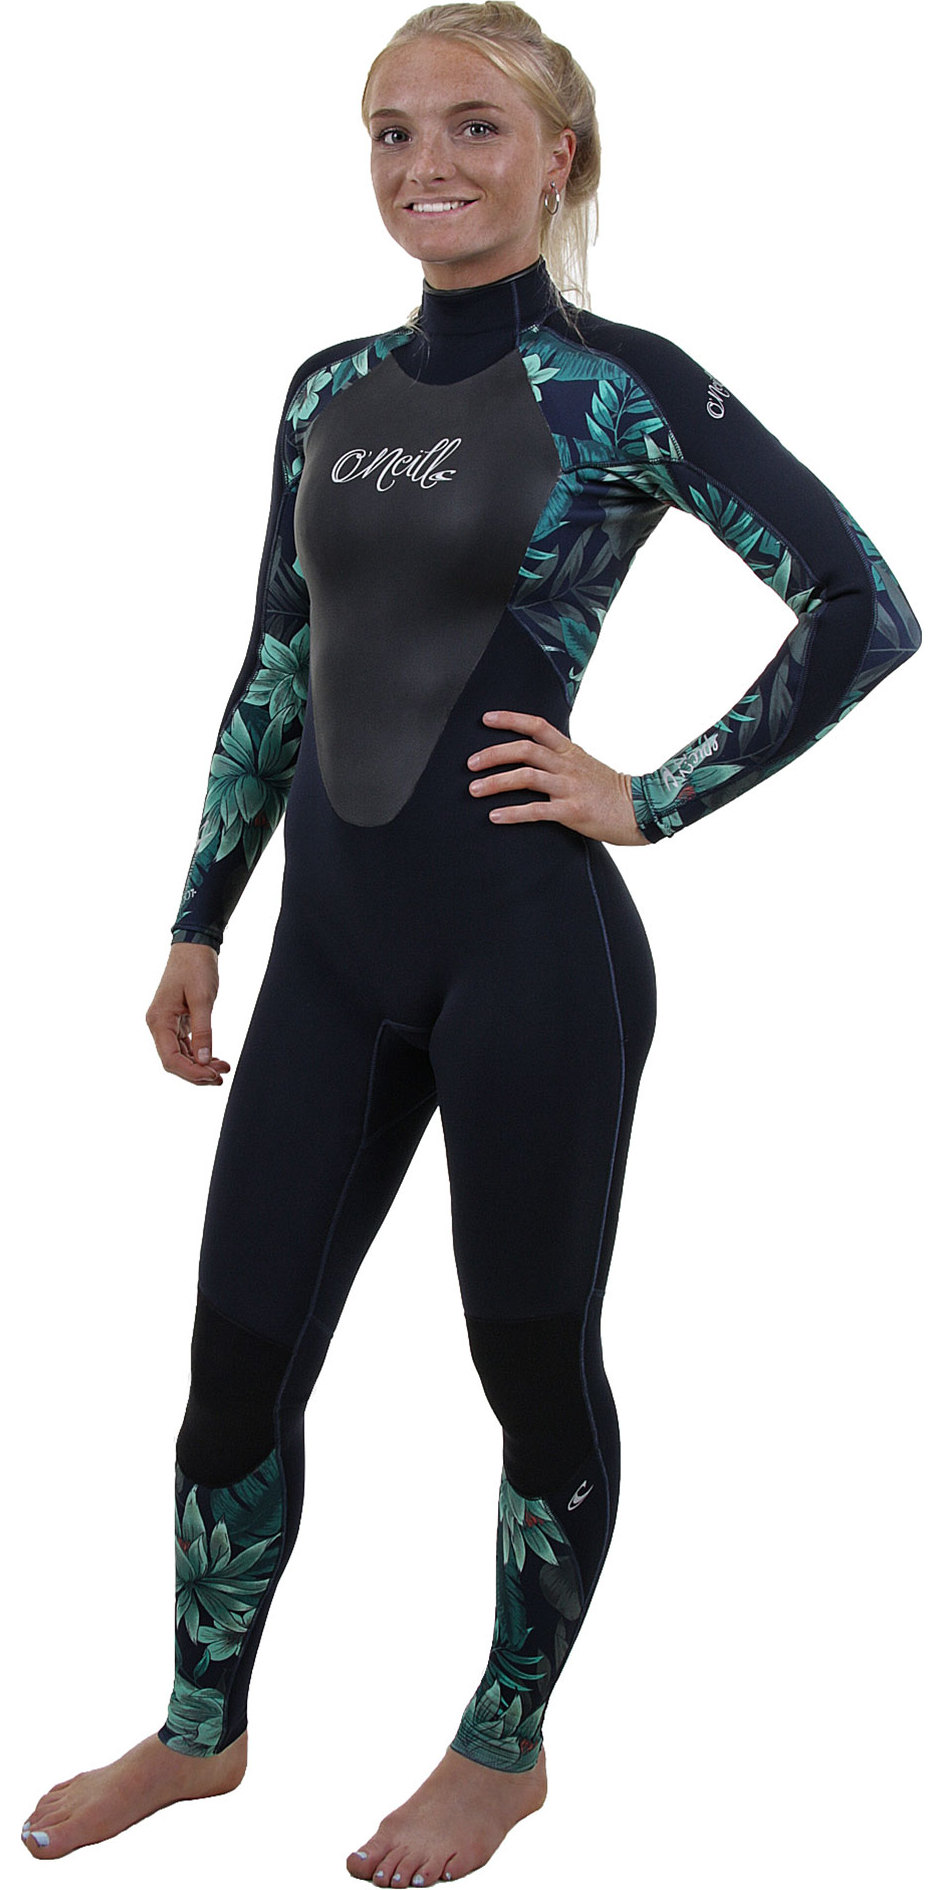 2019 O'Neill Womens Epic 5/4mm Back Zip GBS Wetsuit Abyss / Faro 4218